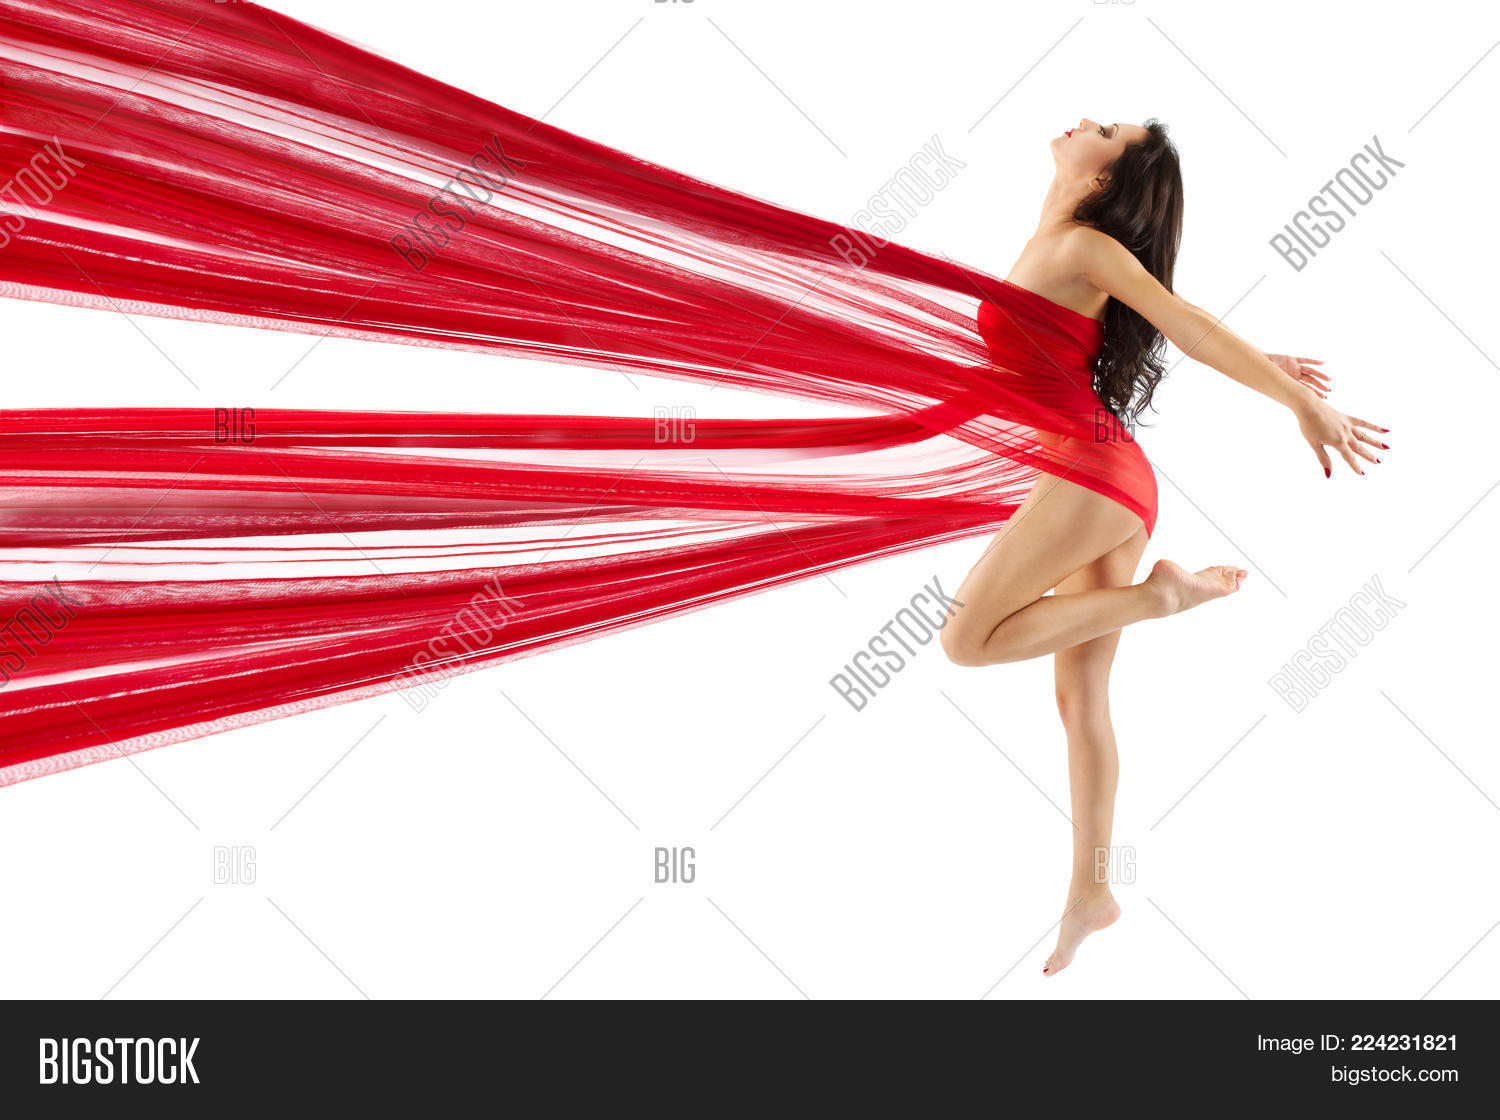 Woman Dance Red Fabric, Sexy Model Dancing Modern Sport Gymnastics, Young  Girl Isolated on